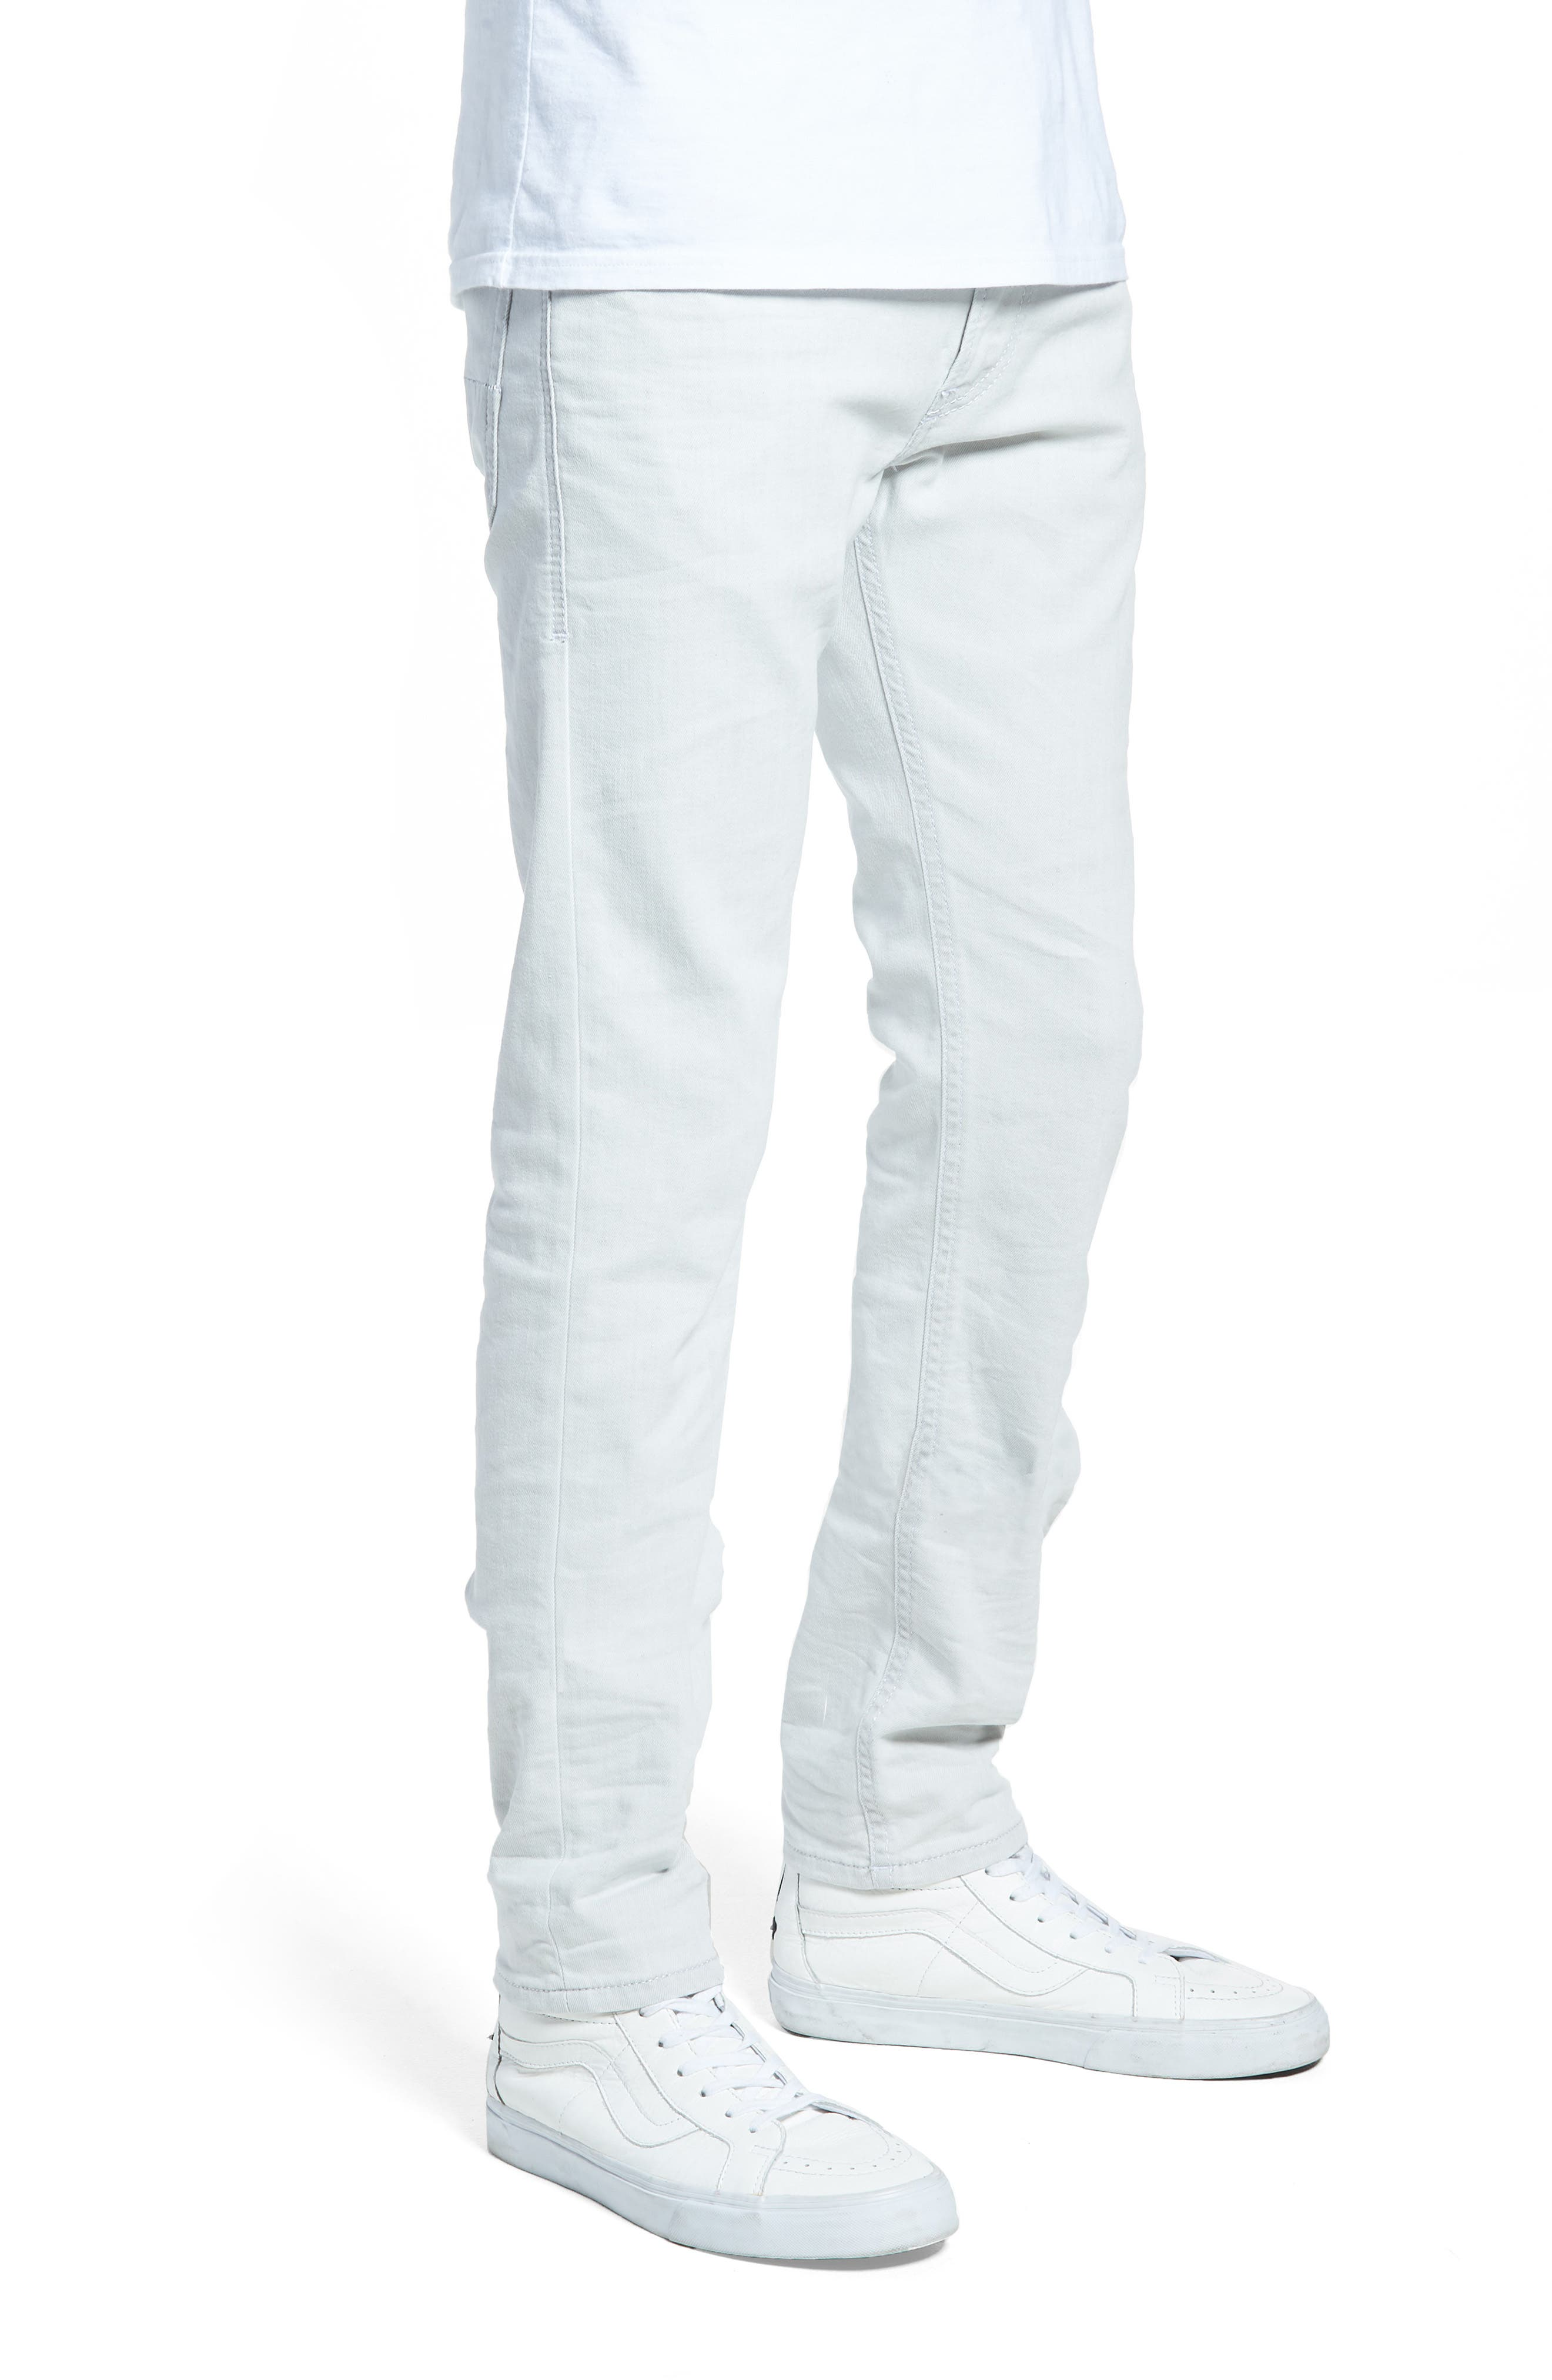 Thommer Slim Fit Jeans,                             Alternate thumbnail 3, color,                             0689F